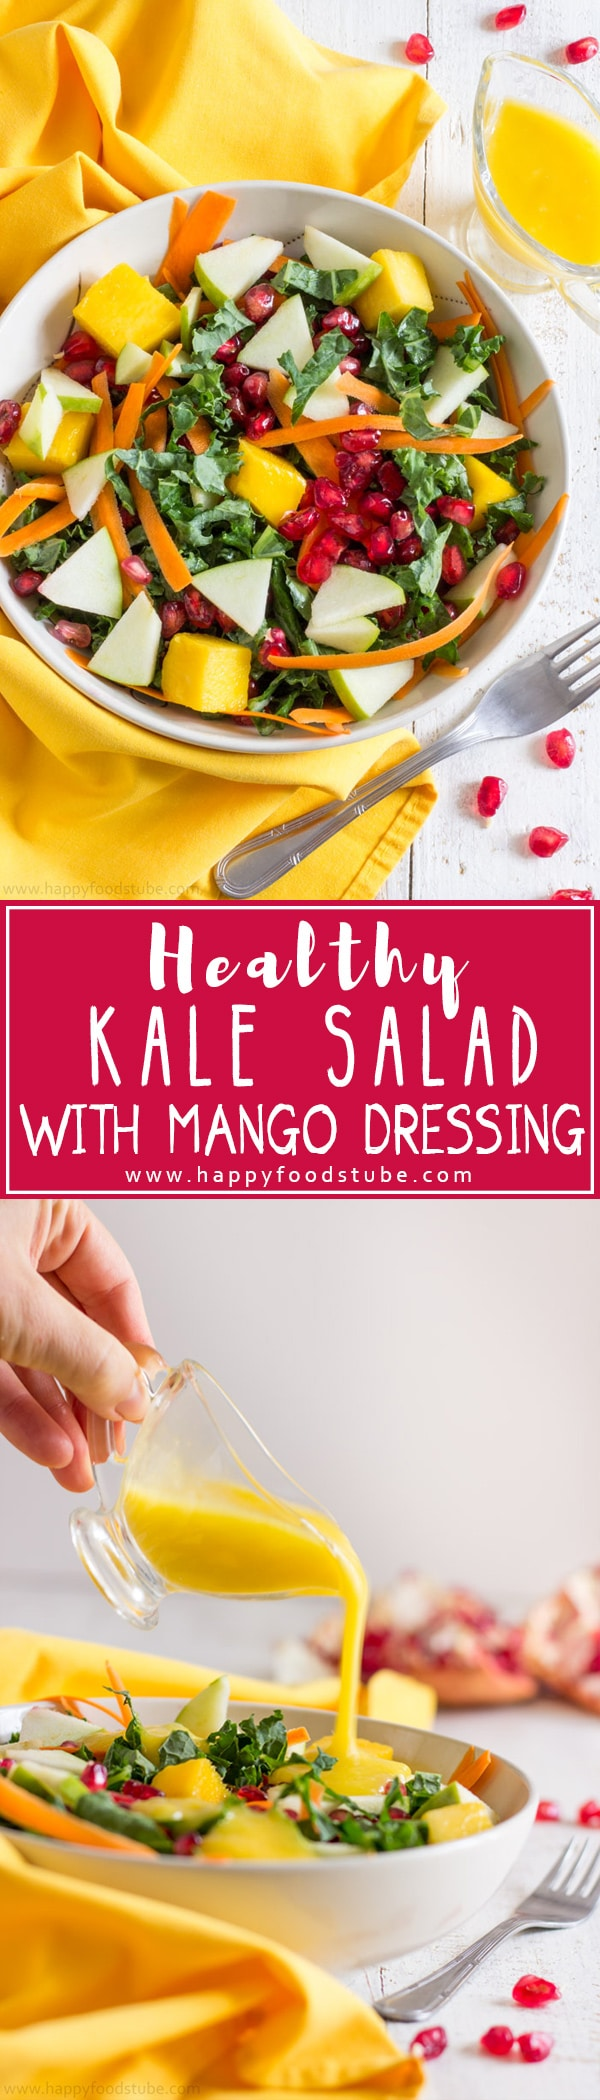 Super Healthy Kale Salad with Mango Dressing. Easy vegetarian recipe. It's light, ready in less than 15 minutes, nutritious & easy to make. Detox salad